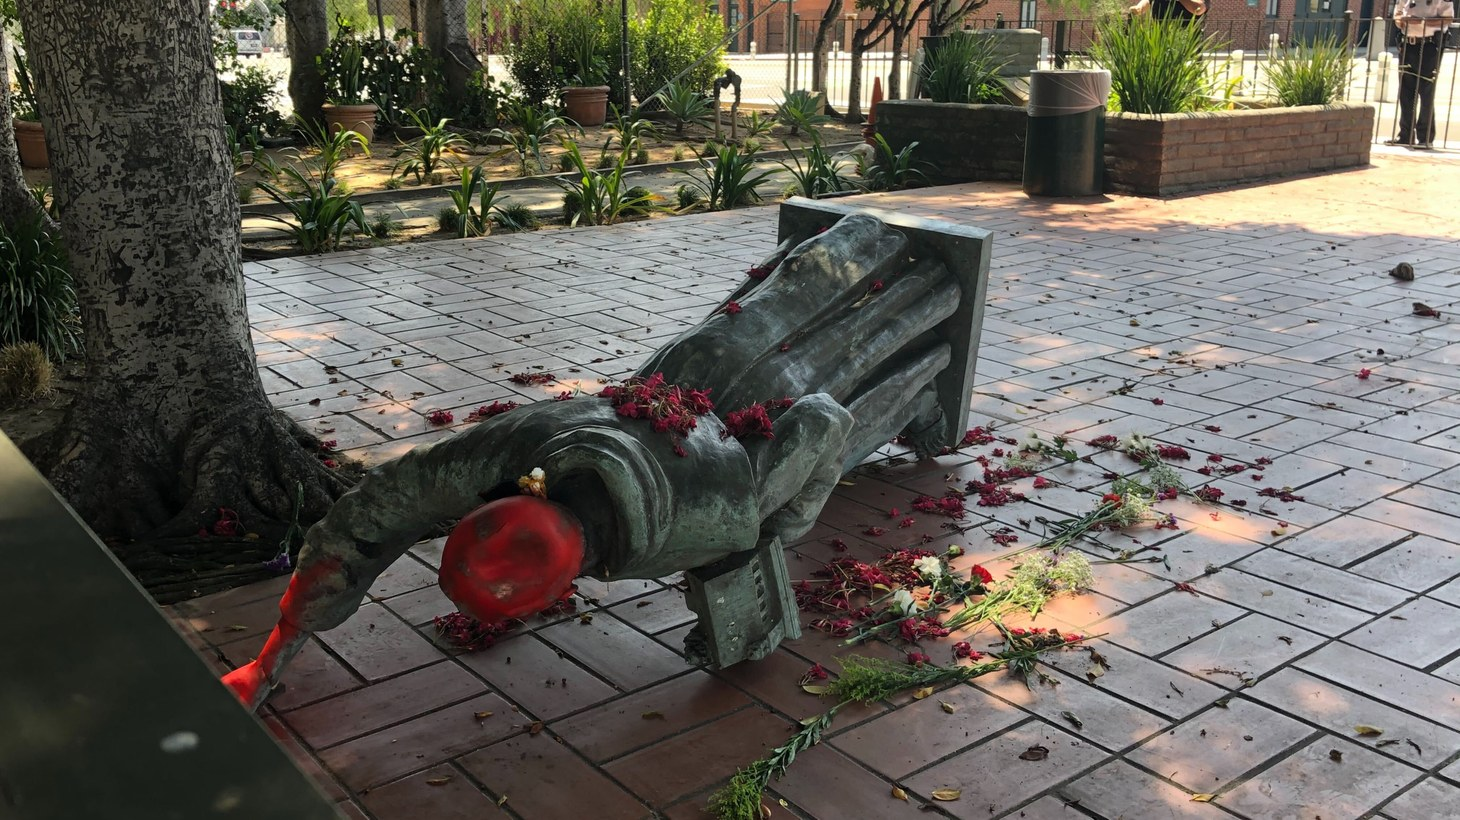 Indigenous activists took to Olvera Street and brought down a statue of Junipero Serra, a Spanish priest from the 18th century.